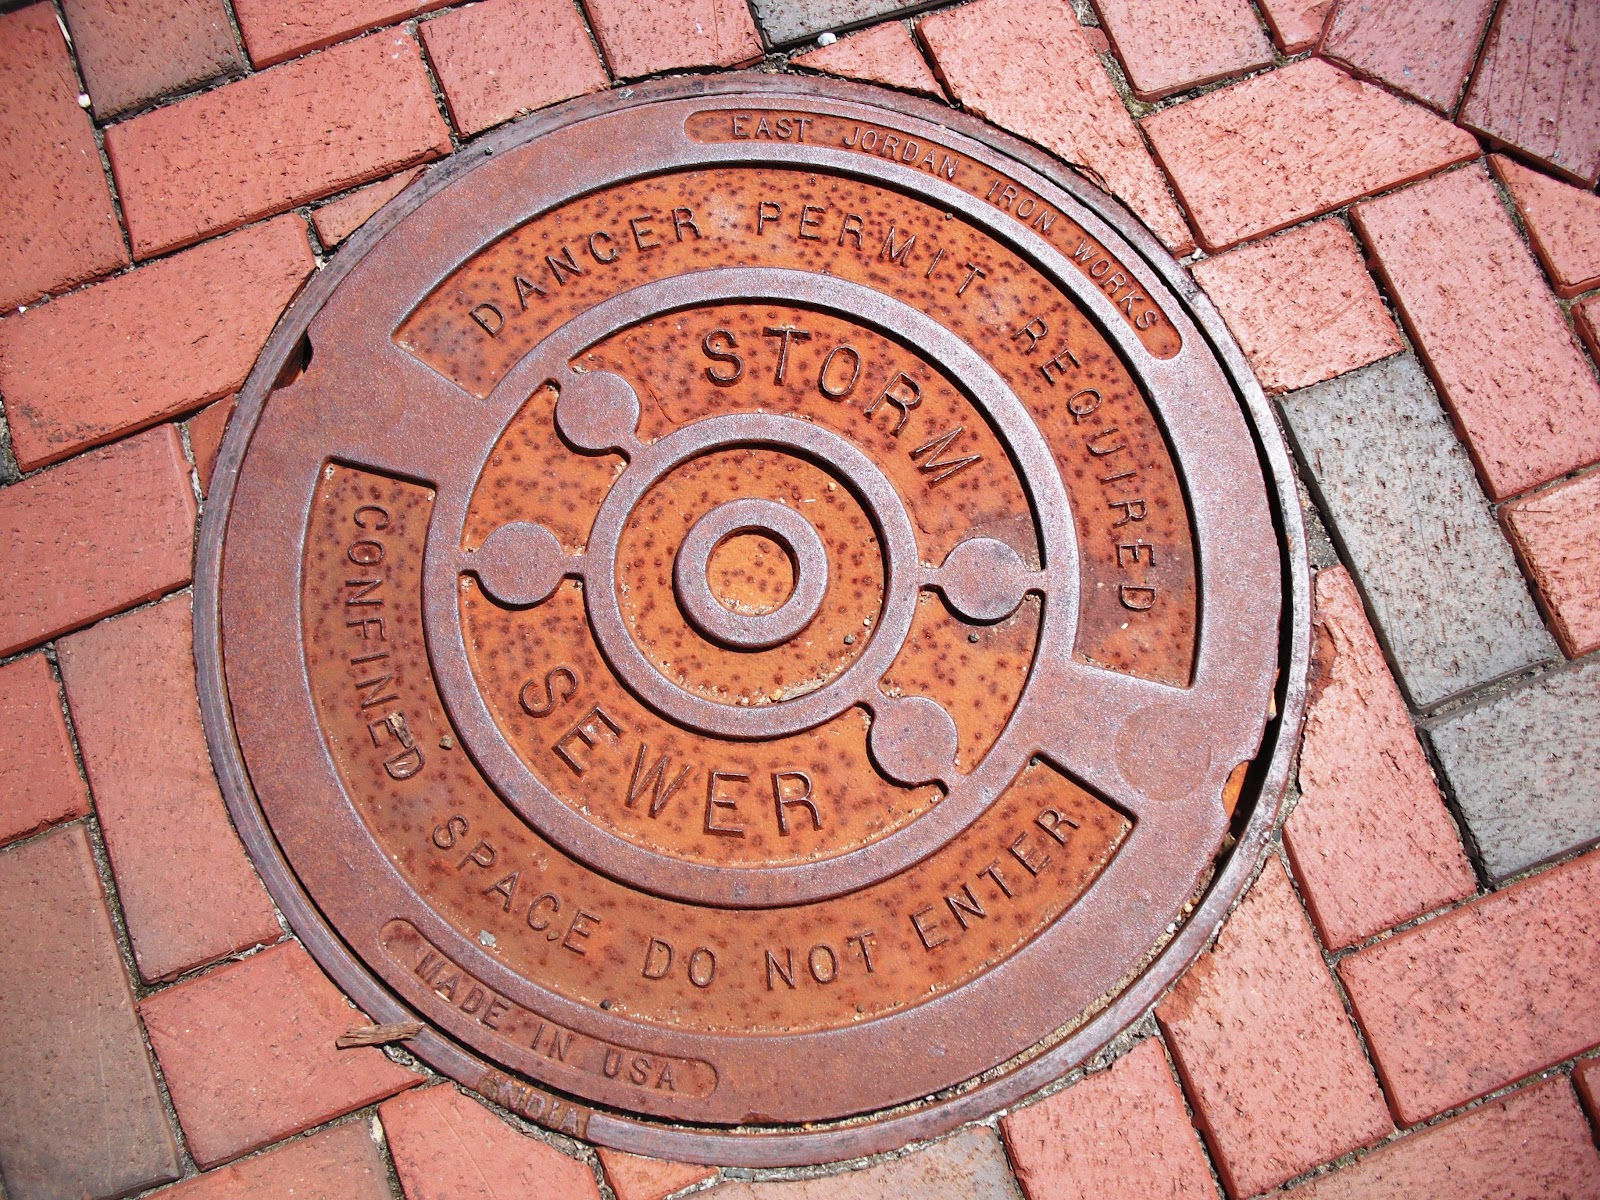 Chocolate Bicycle Beauty In Sewer Covers